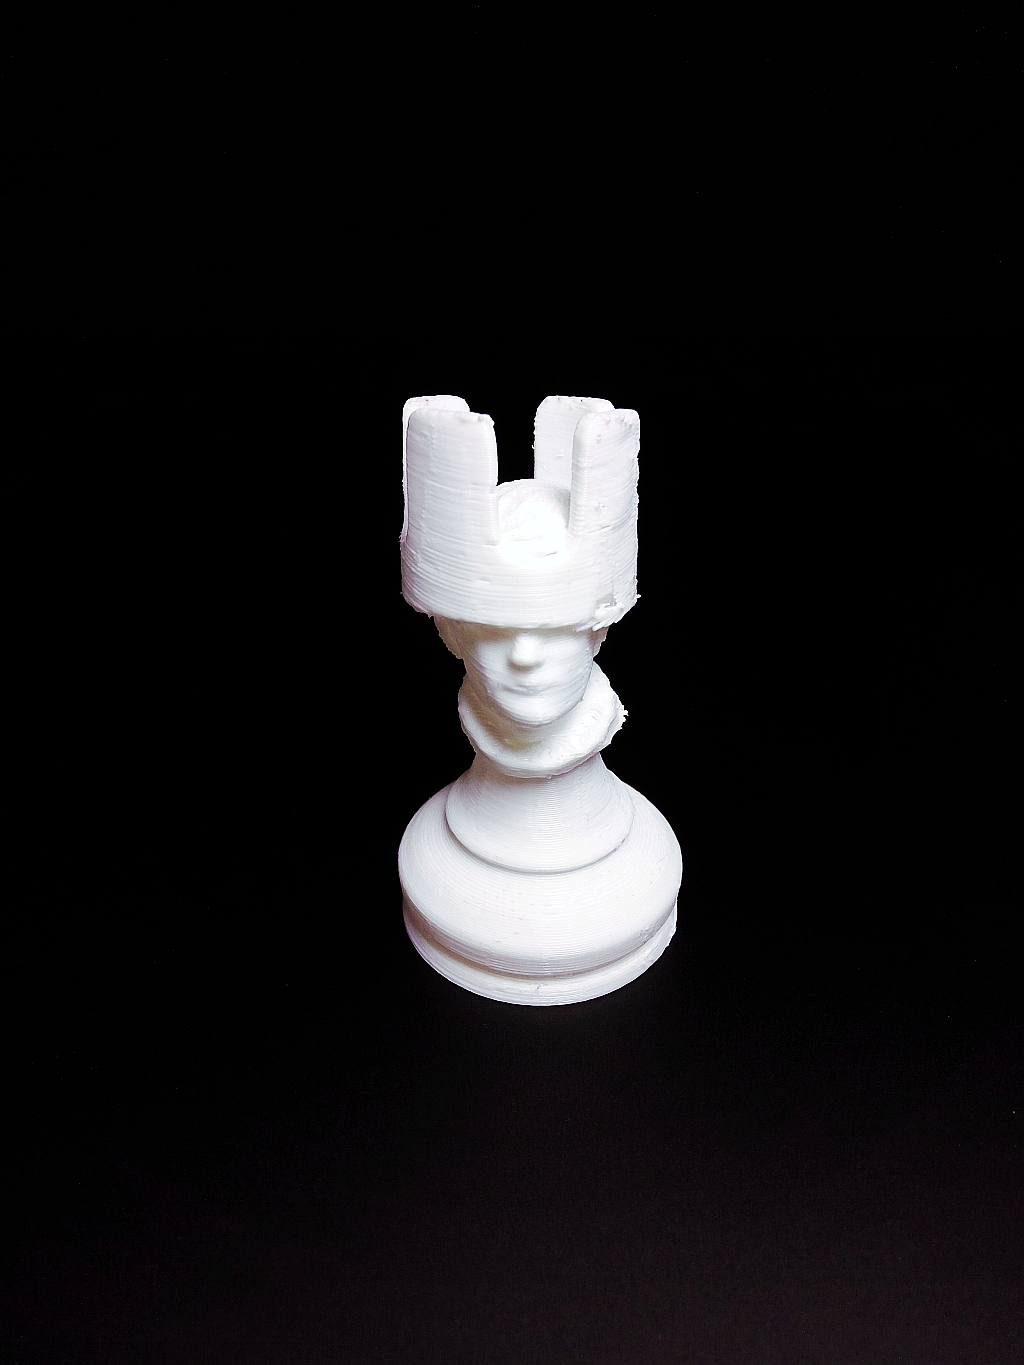 Chess set out of my own head image